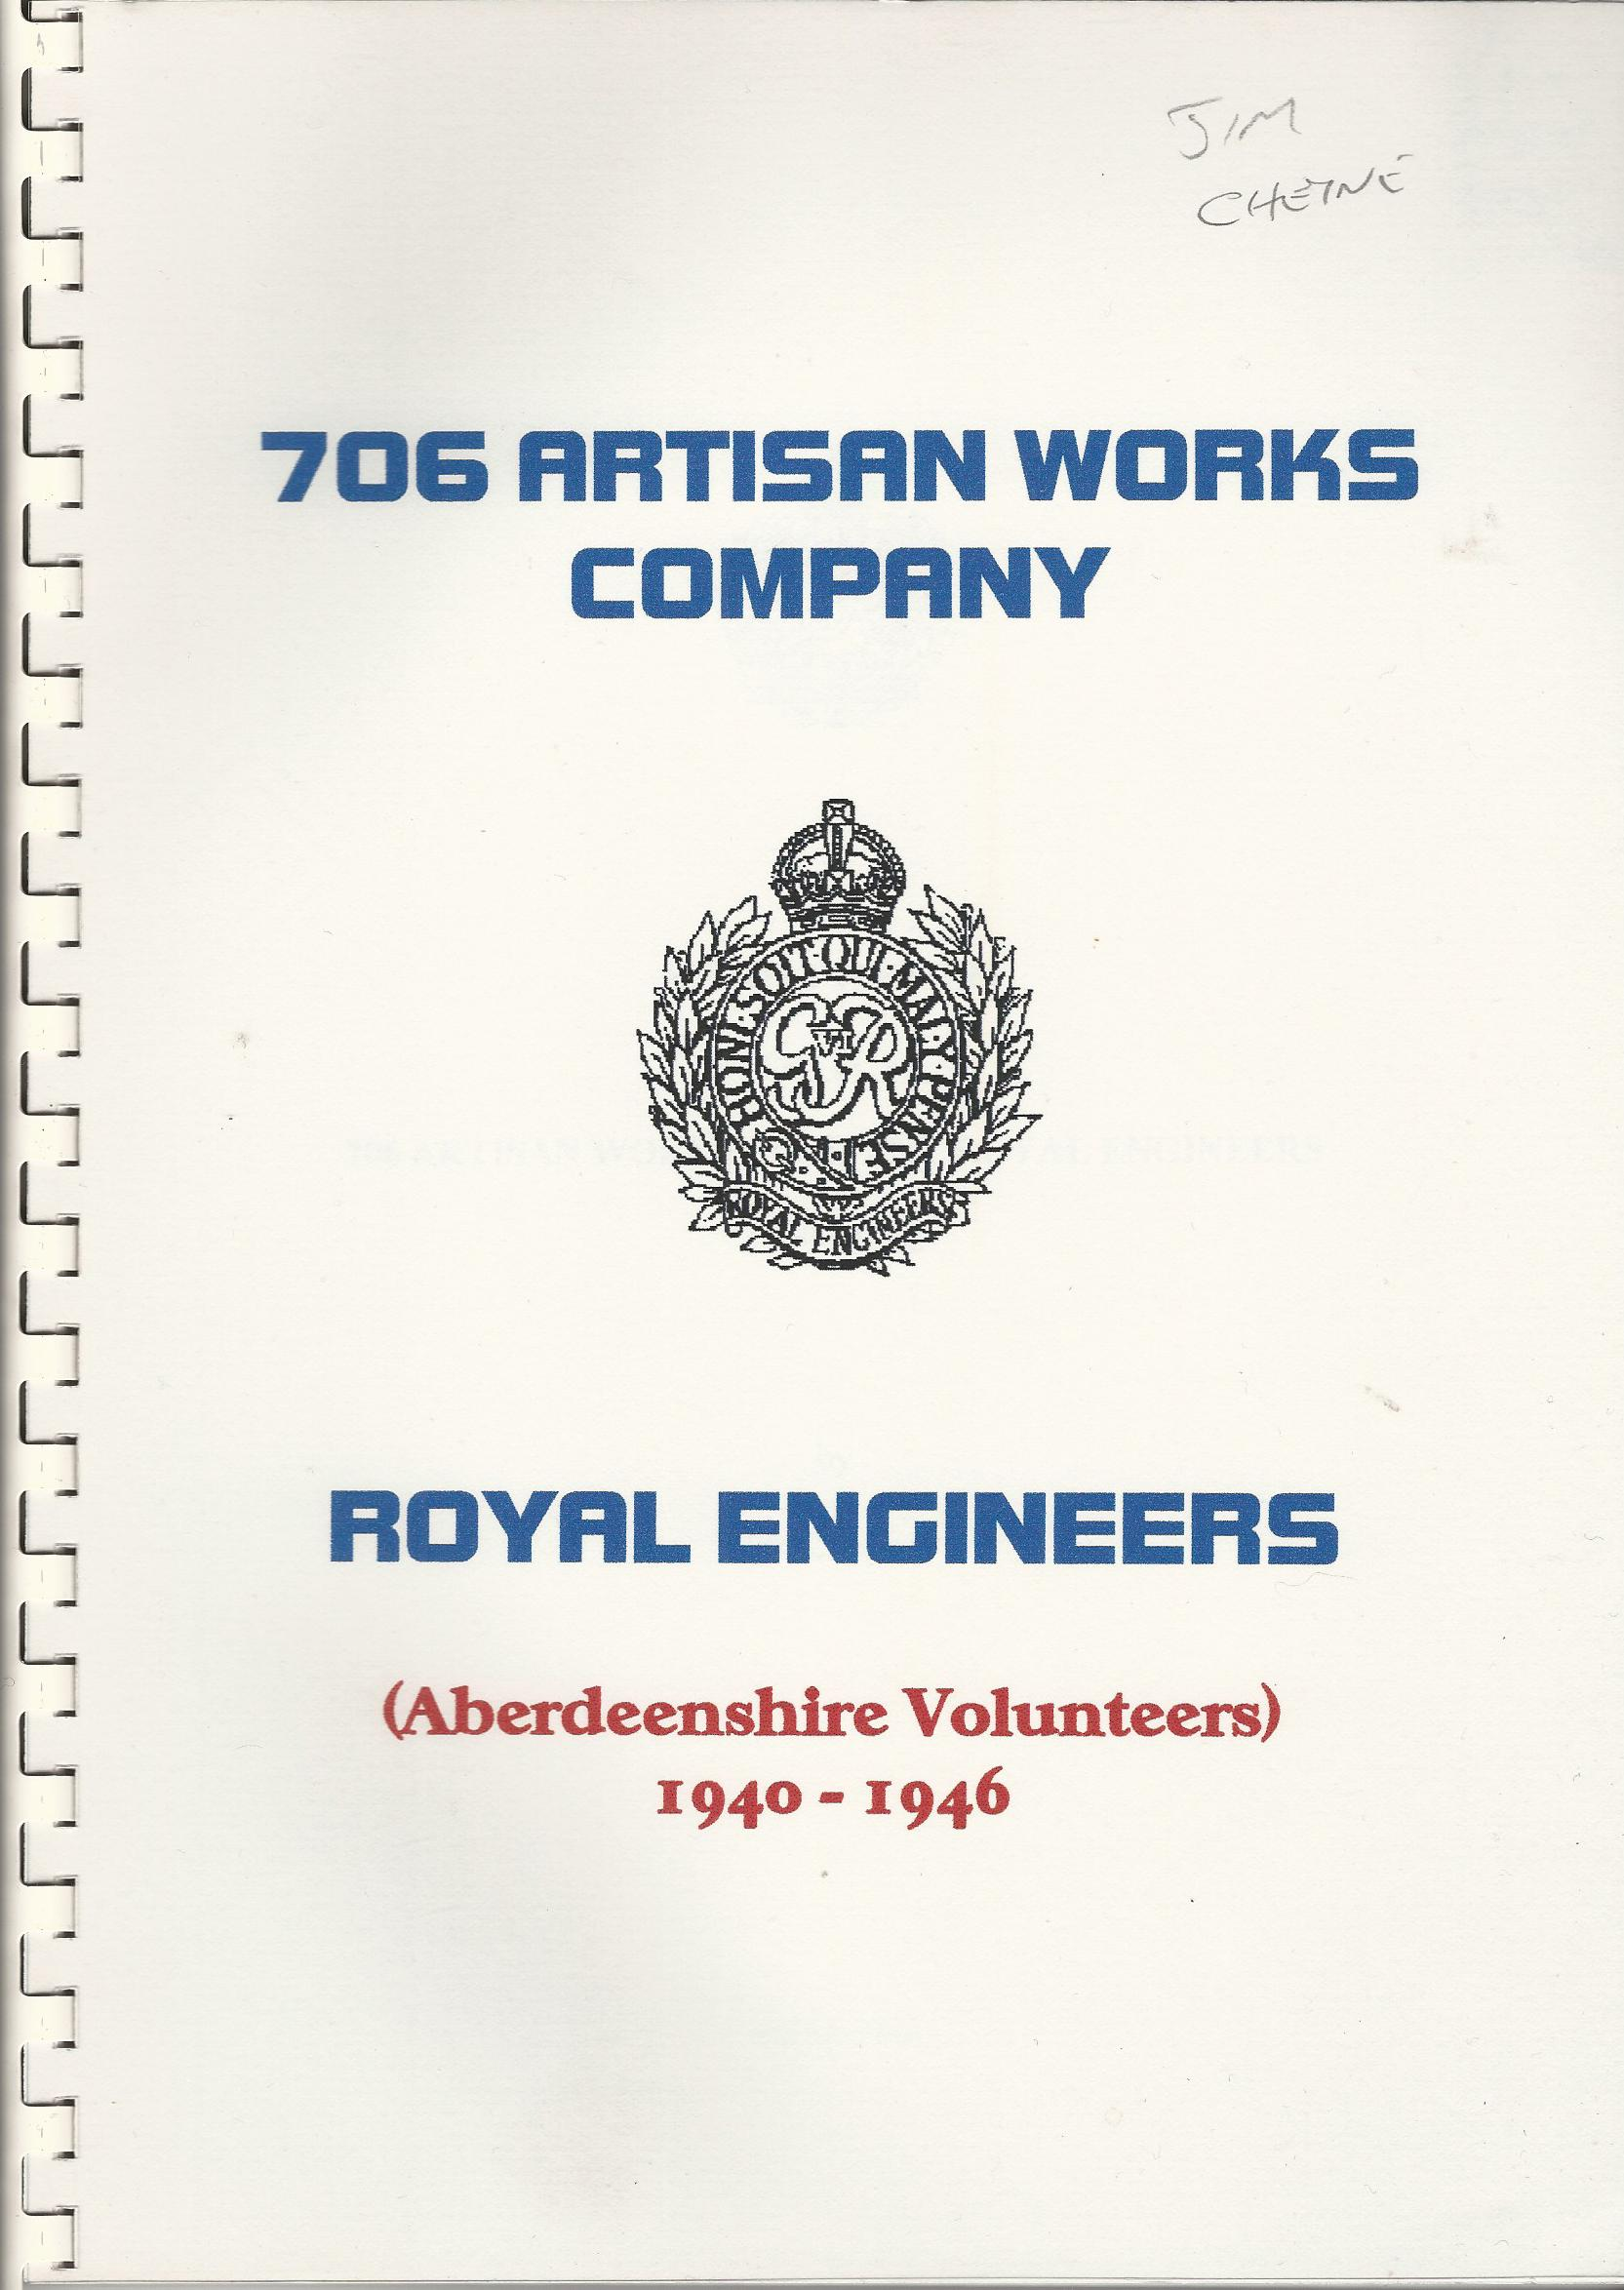 Image for 706 Artisan Works Company, Royal Engineers (Aberdeenshire Volunteers 1940-1946)